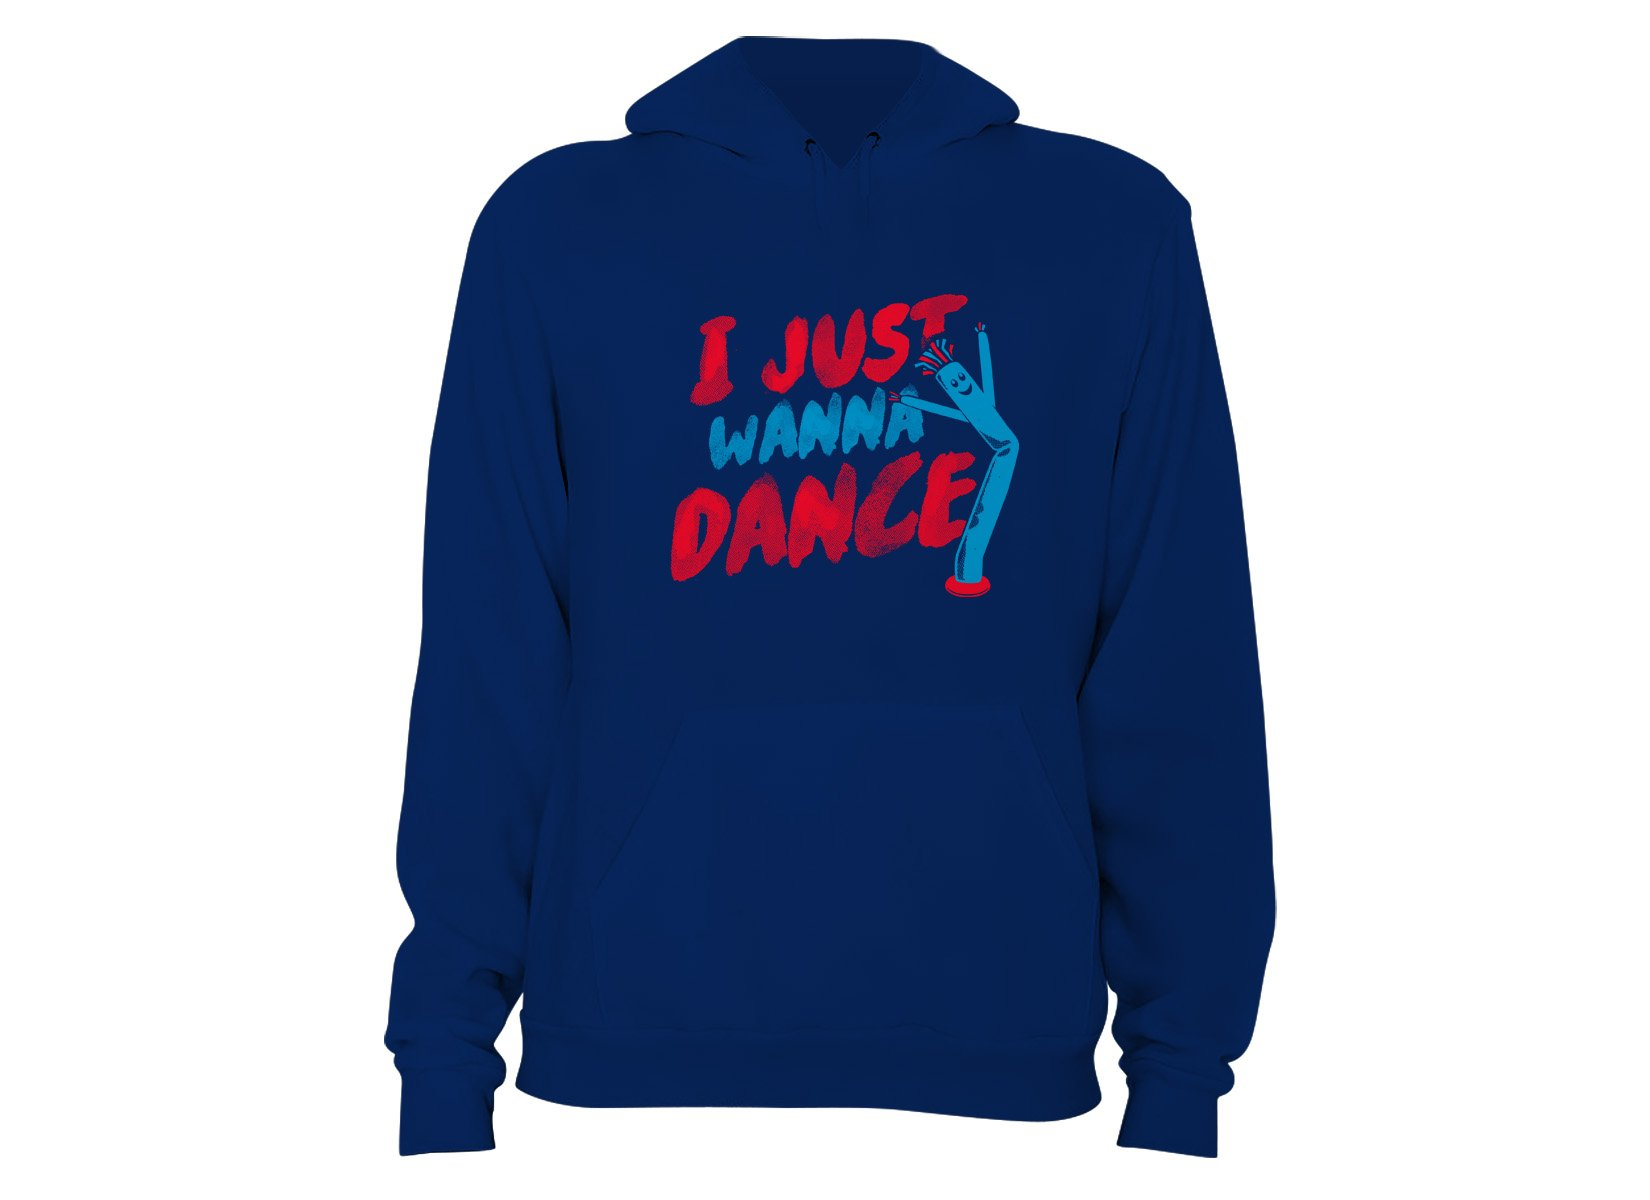 I Just Wanna Dance on Hoodie